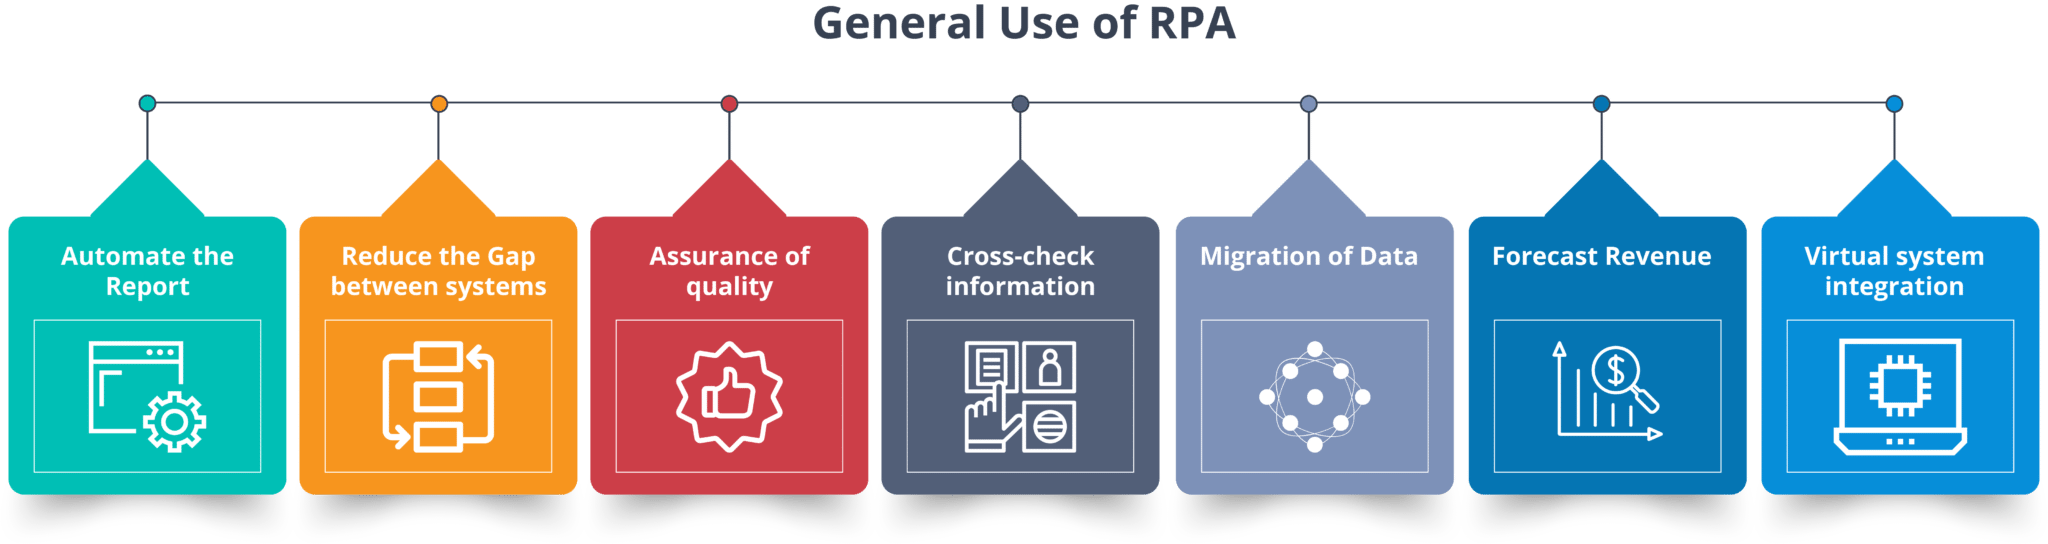 General Use Of RPA - RPA Tutorial - Edureka